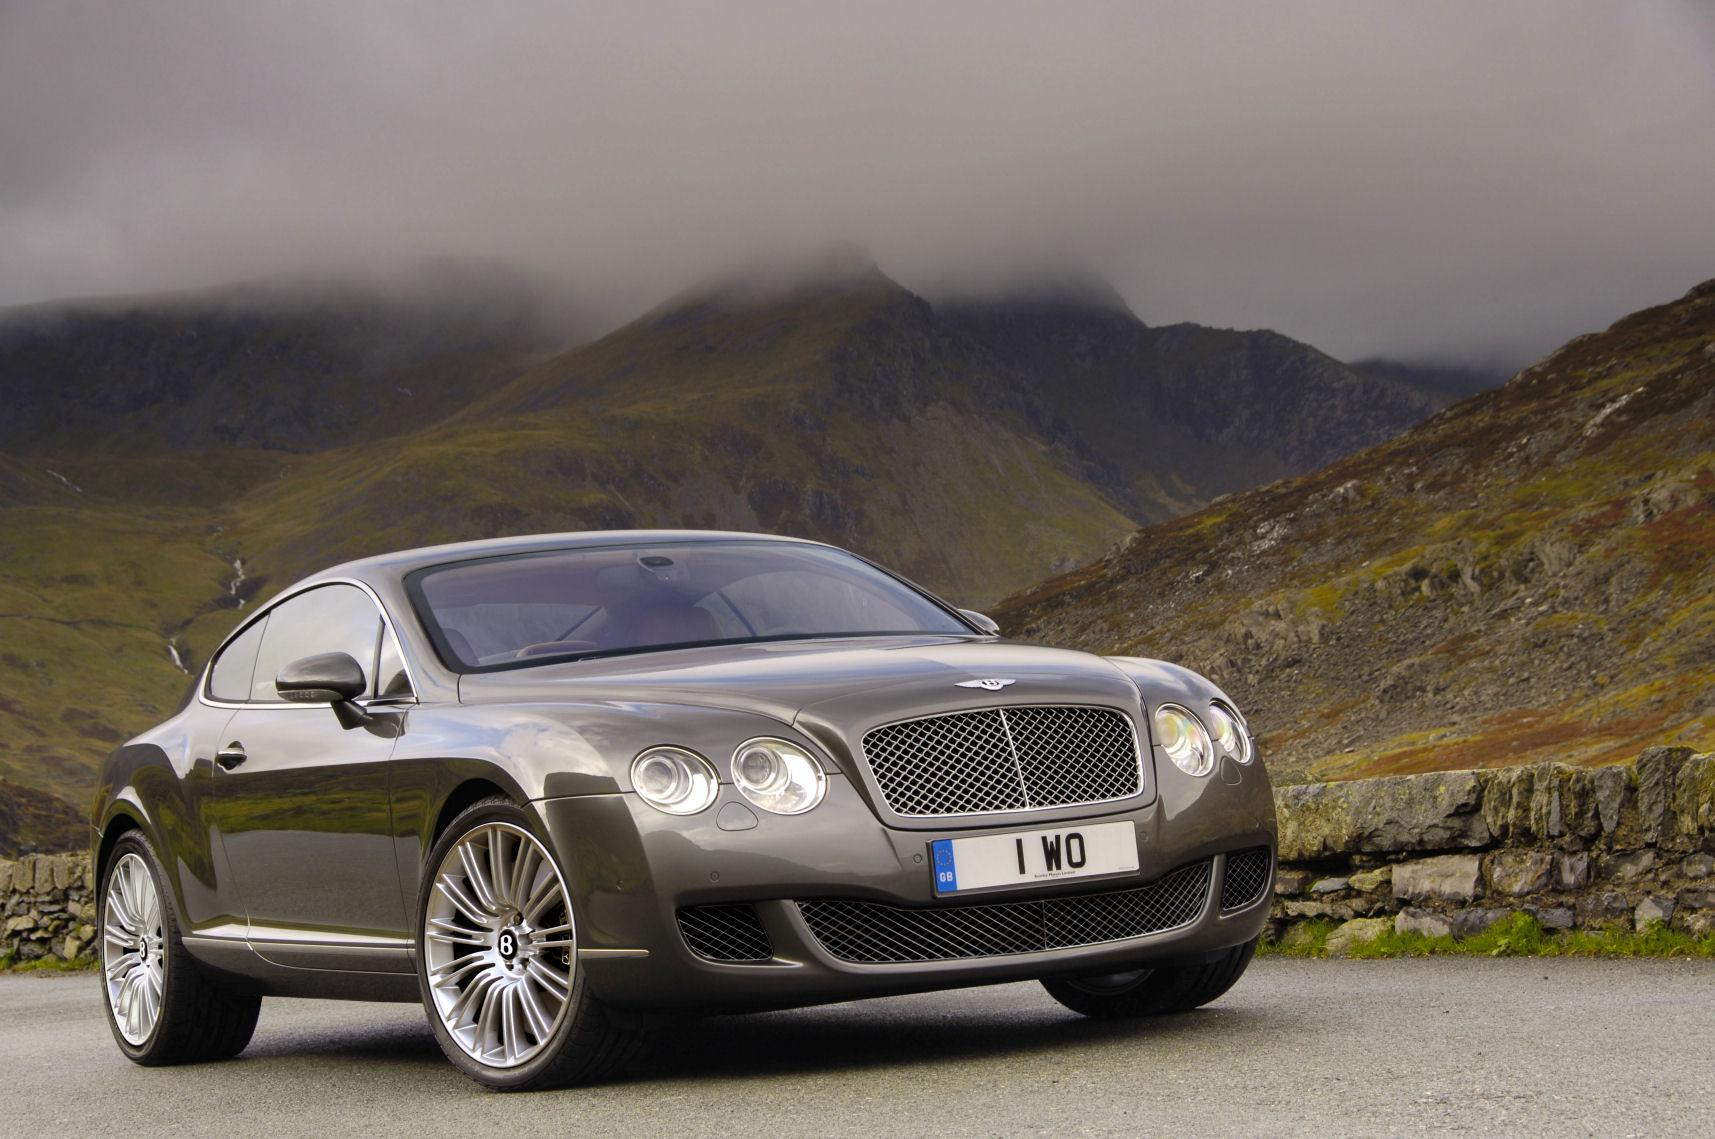 2009 Bentley Continental Gt Speed #13